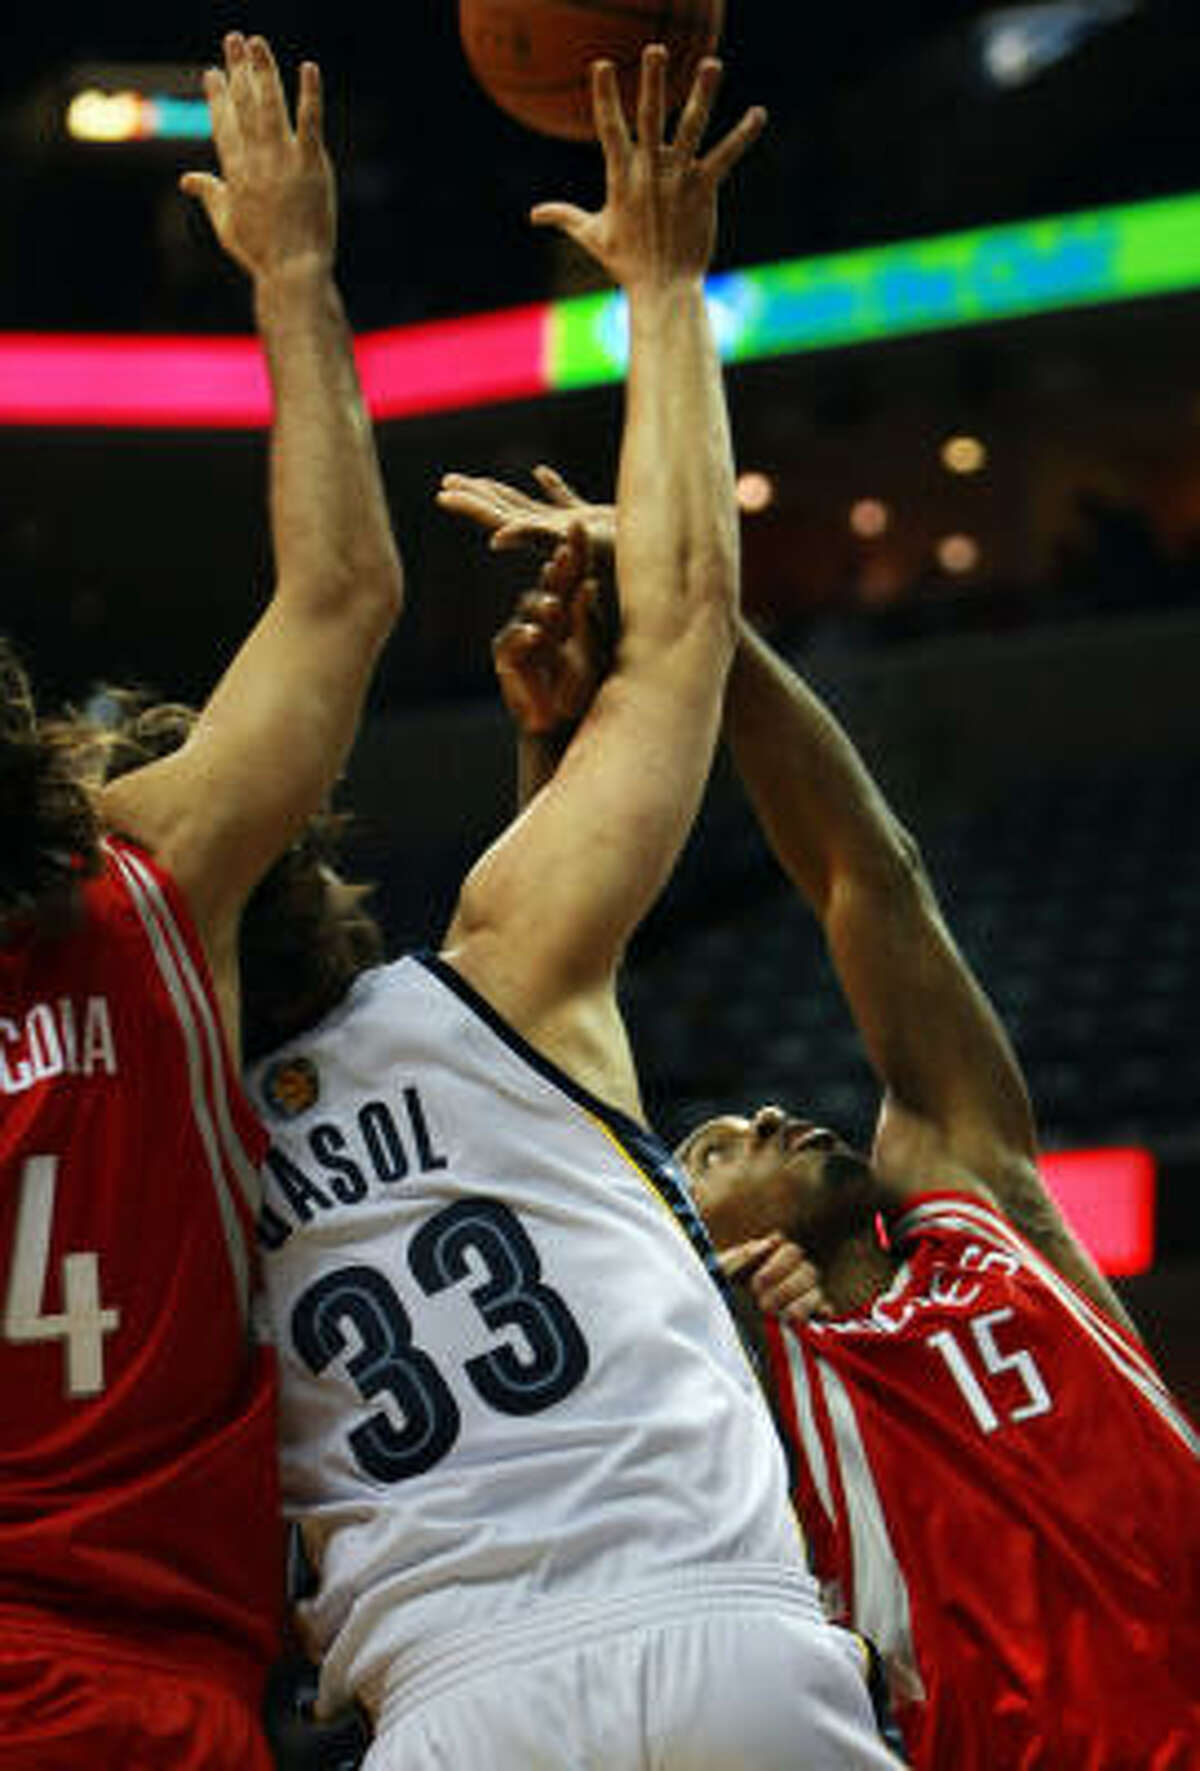 Rockets forward Joey Dorsey (15) battles for a rebound with Memphis Grizzlies center Marc Gasol (33), backed up by Rockets forward Luis Scola (4), in the first half on Wednesday in Memphis, Tenn.